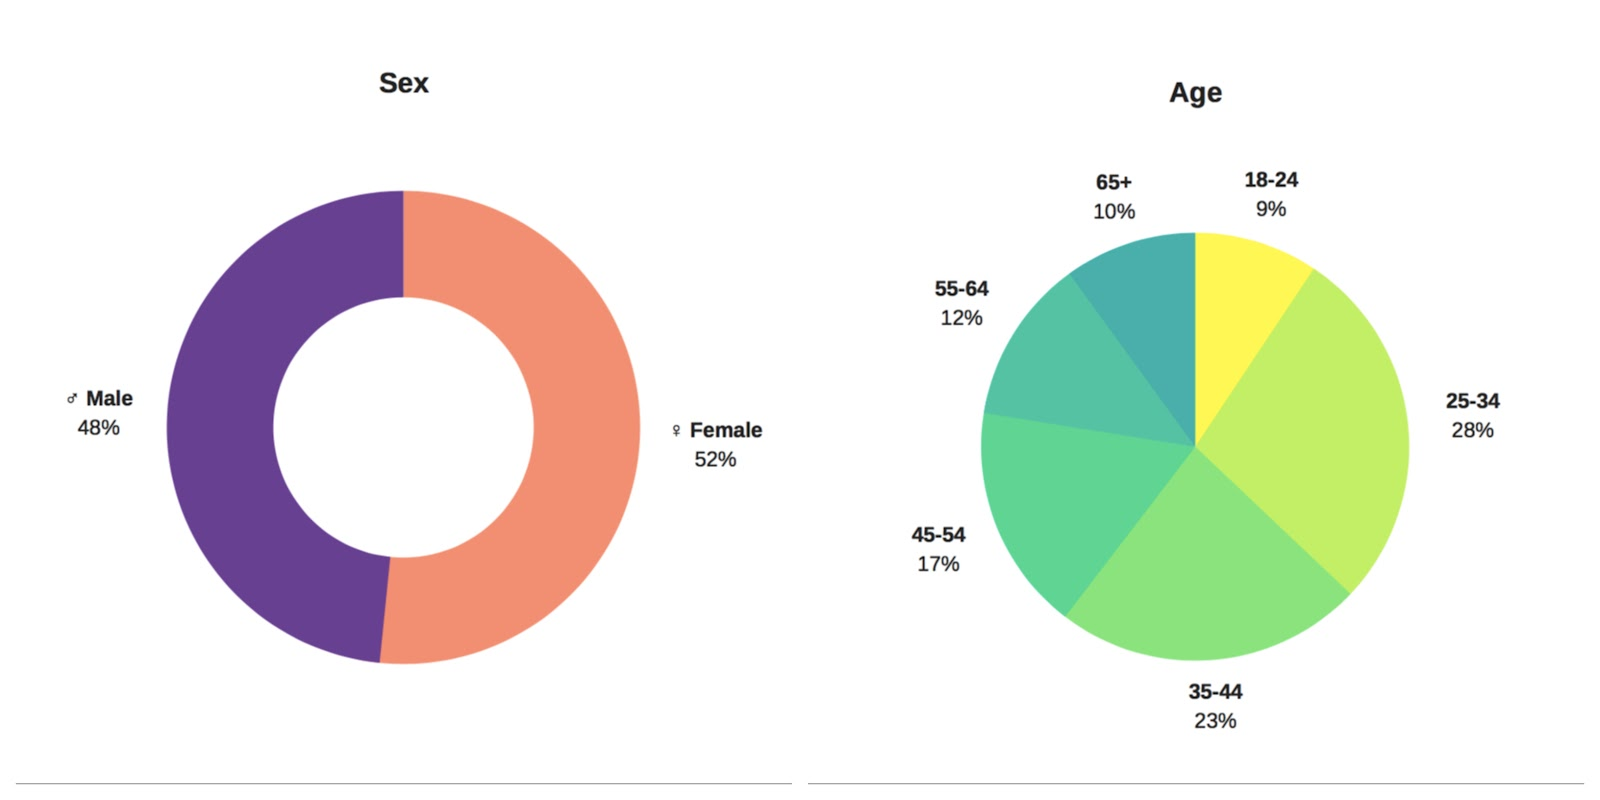 Statistics show that slightly more female users interacted with the platform, and that the age group 25-34 is the biggest.